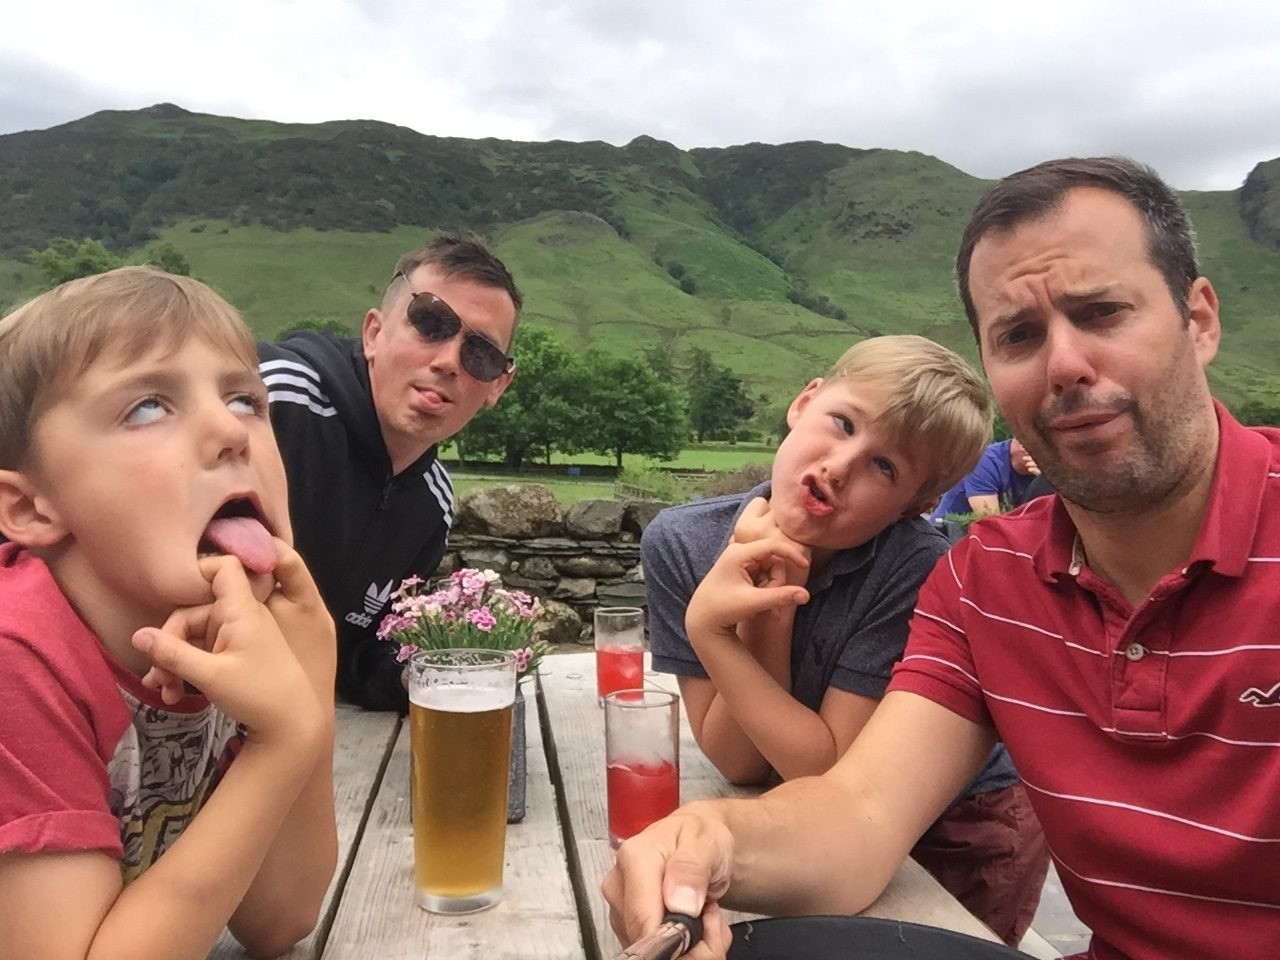 shared parental leave at REED - Peter Parking-Child with husband and boys pulling faces